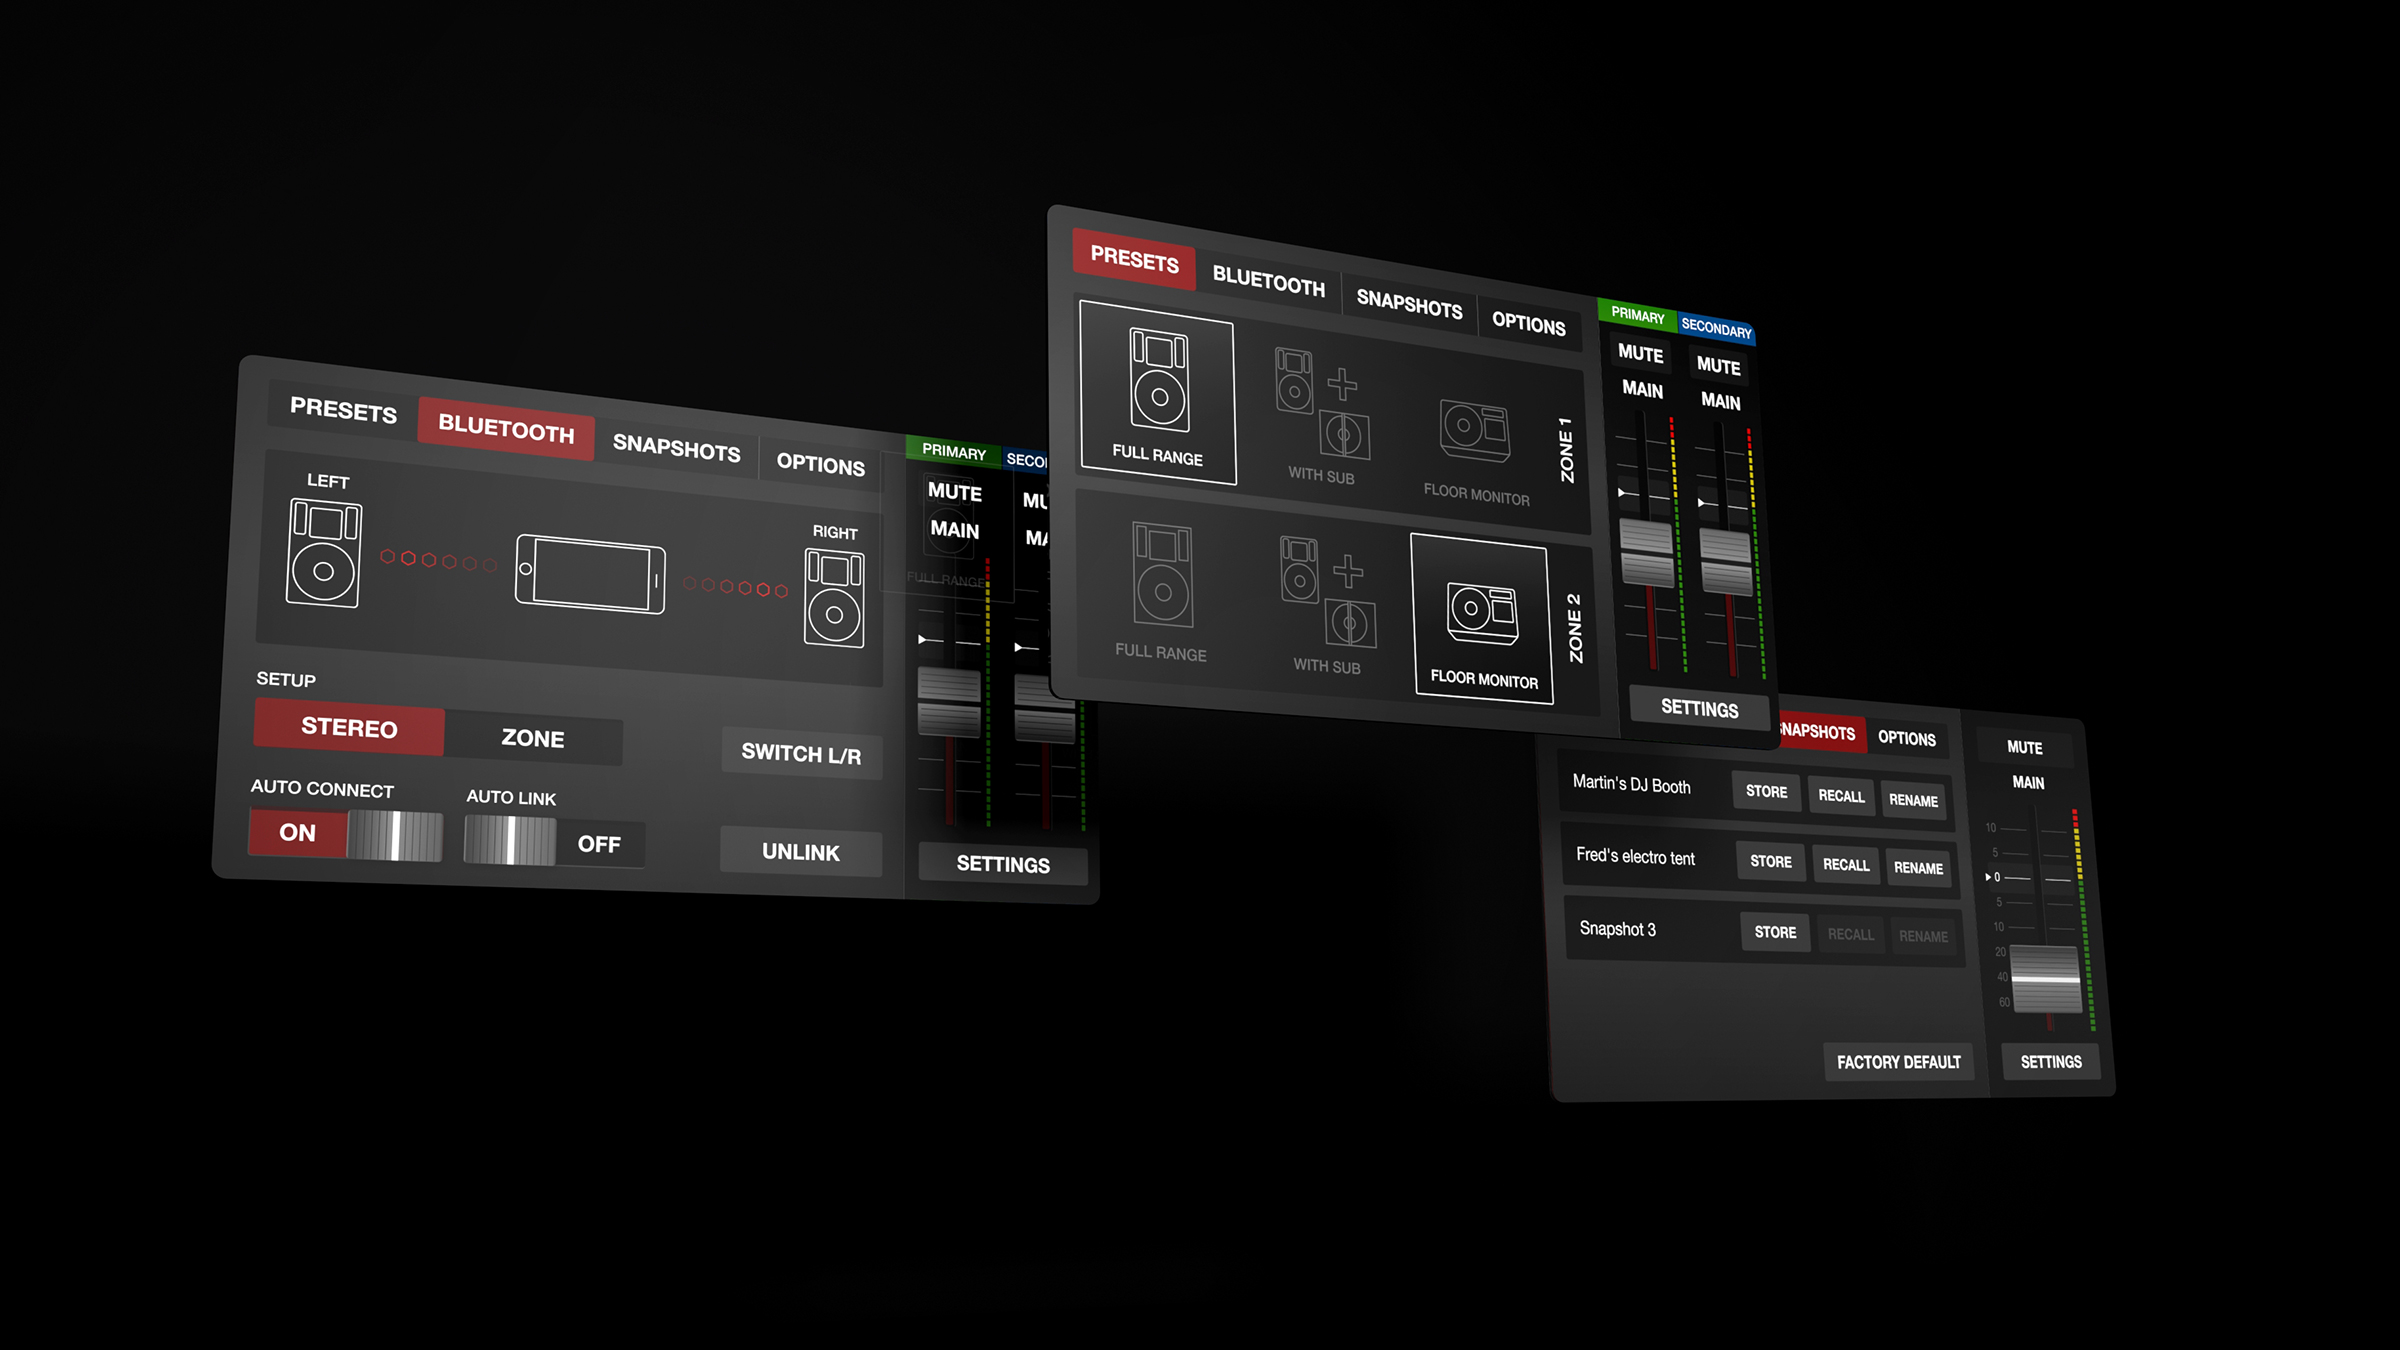 The experience features a neutral dark interface combined with bright zones of activity and interactivity.